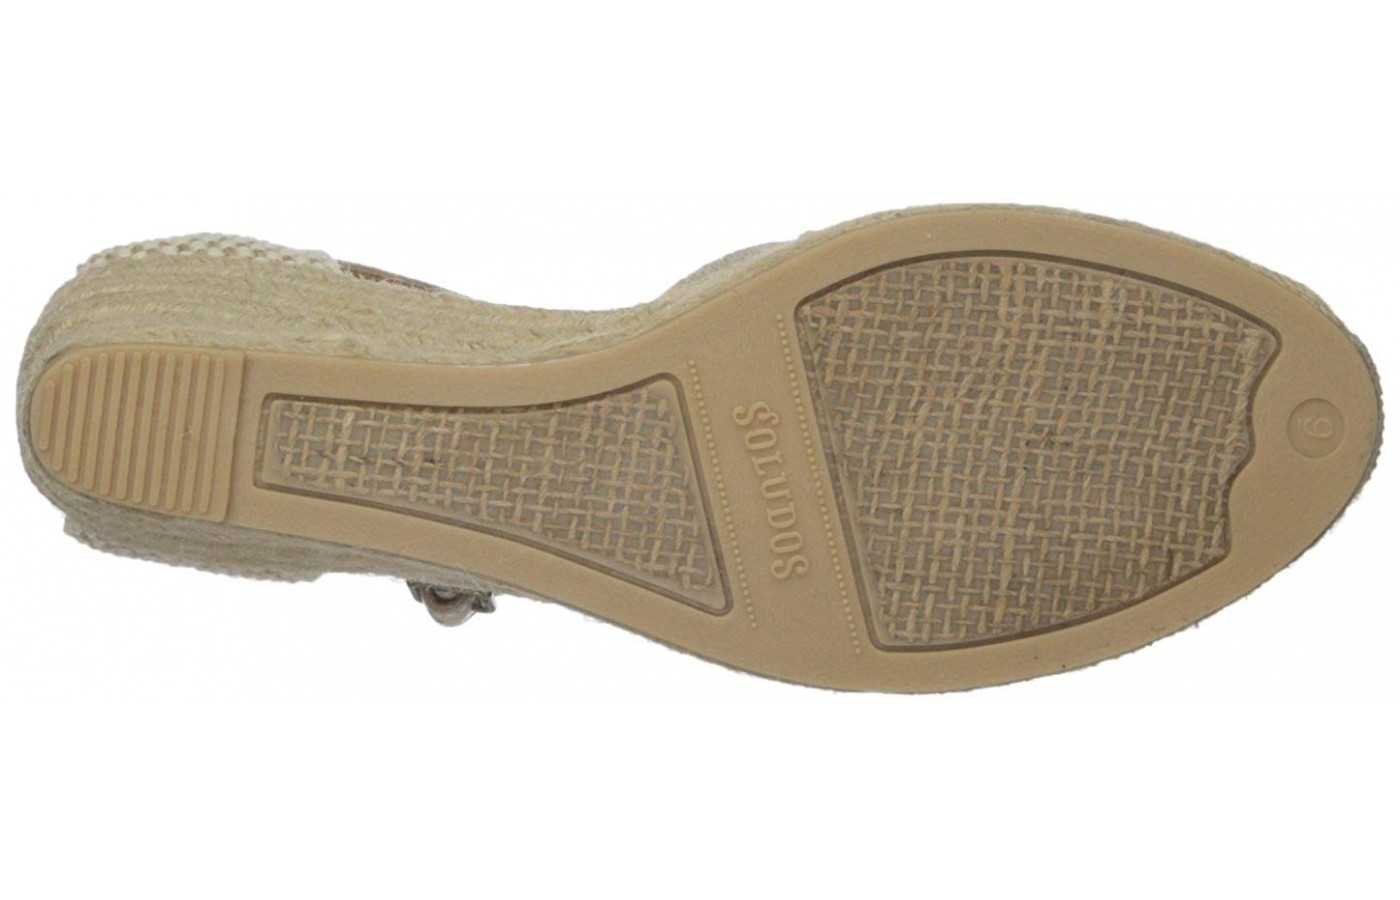 Soludos Closed-Toe Sole